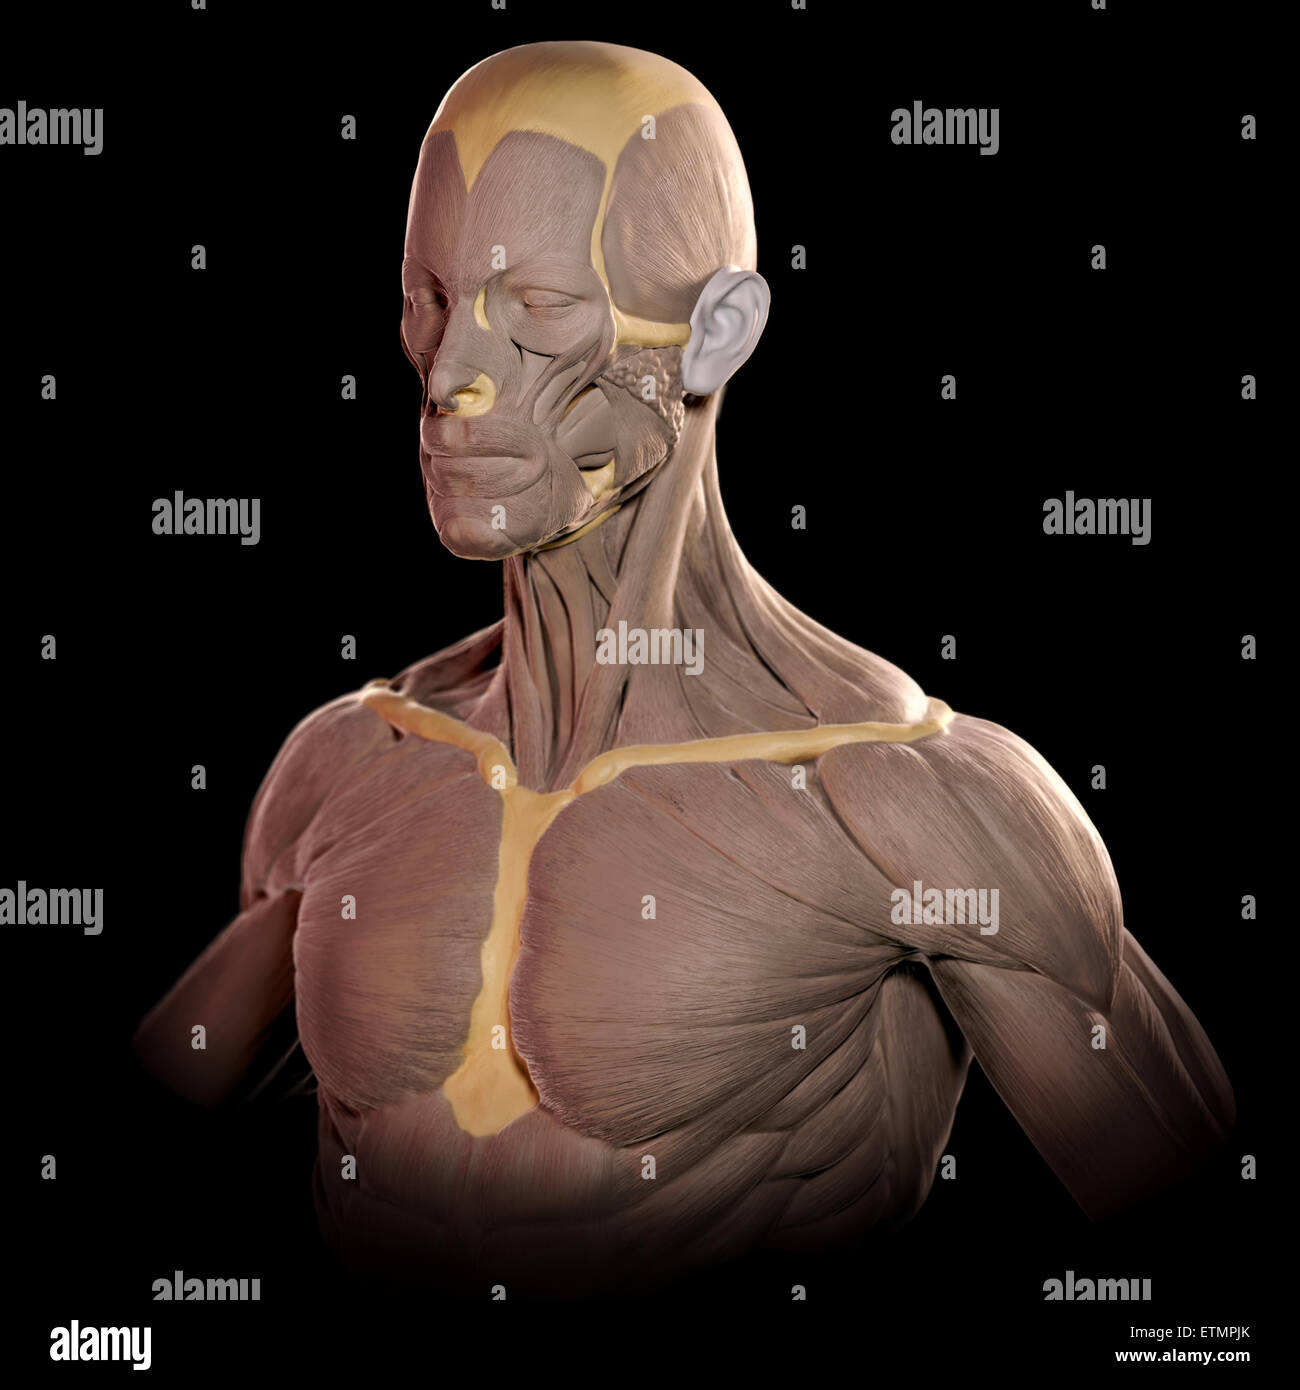 Conceptual image in the style of a clay model of the muscles of the face and upper body. Stock Photo